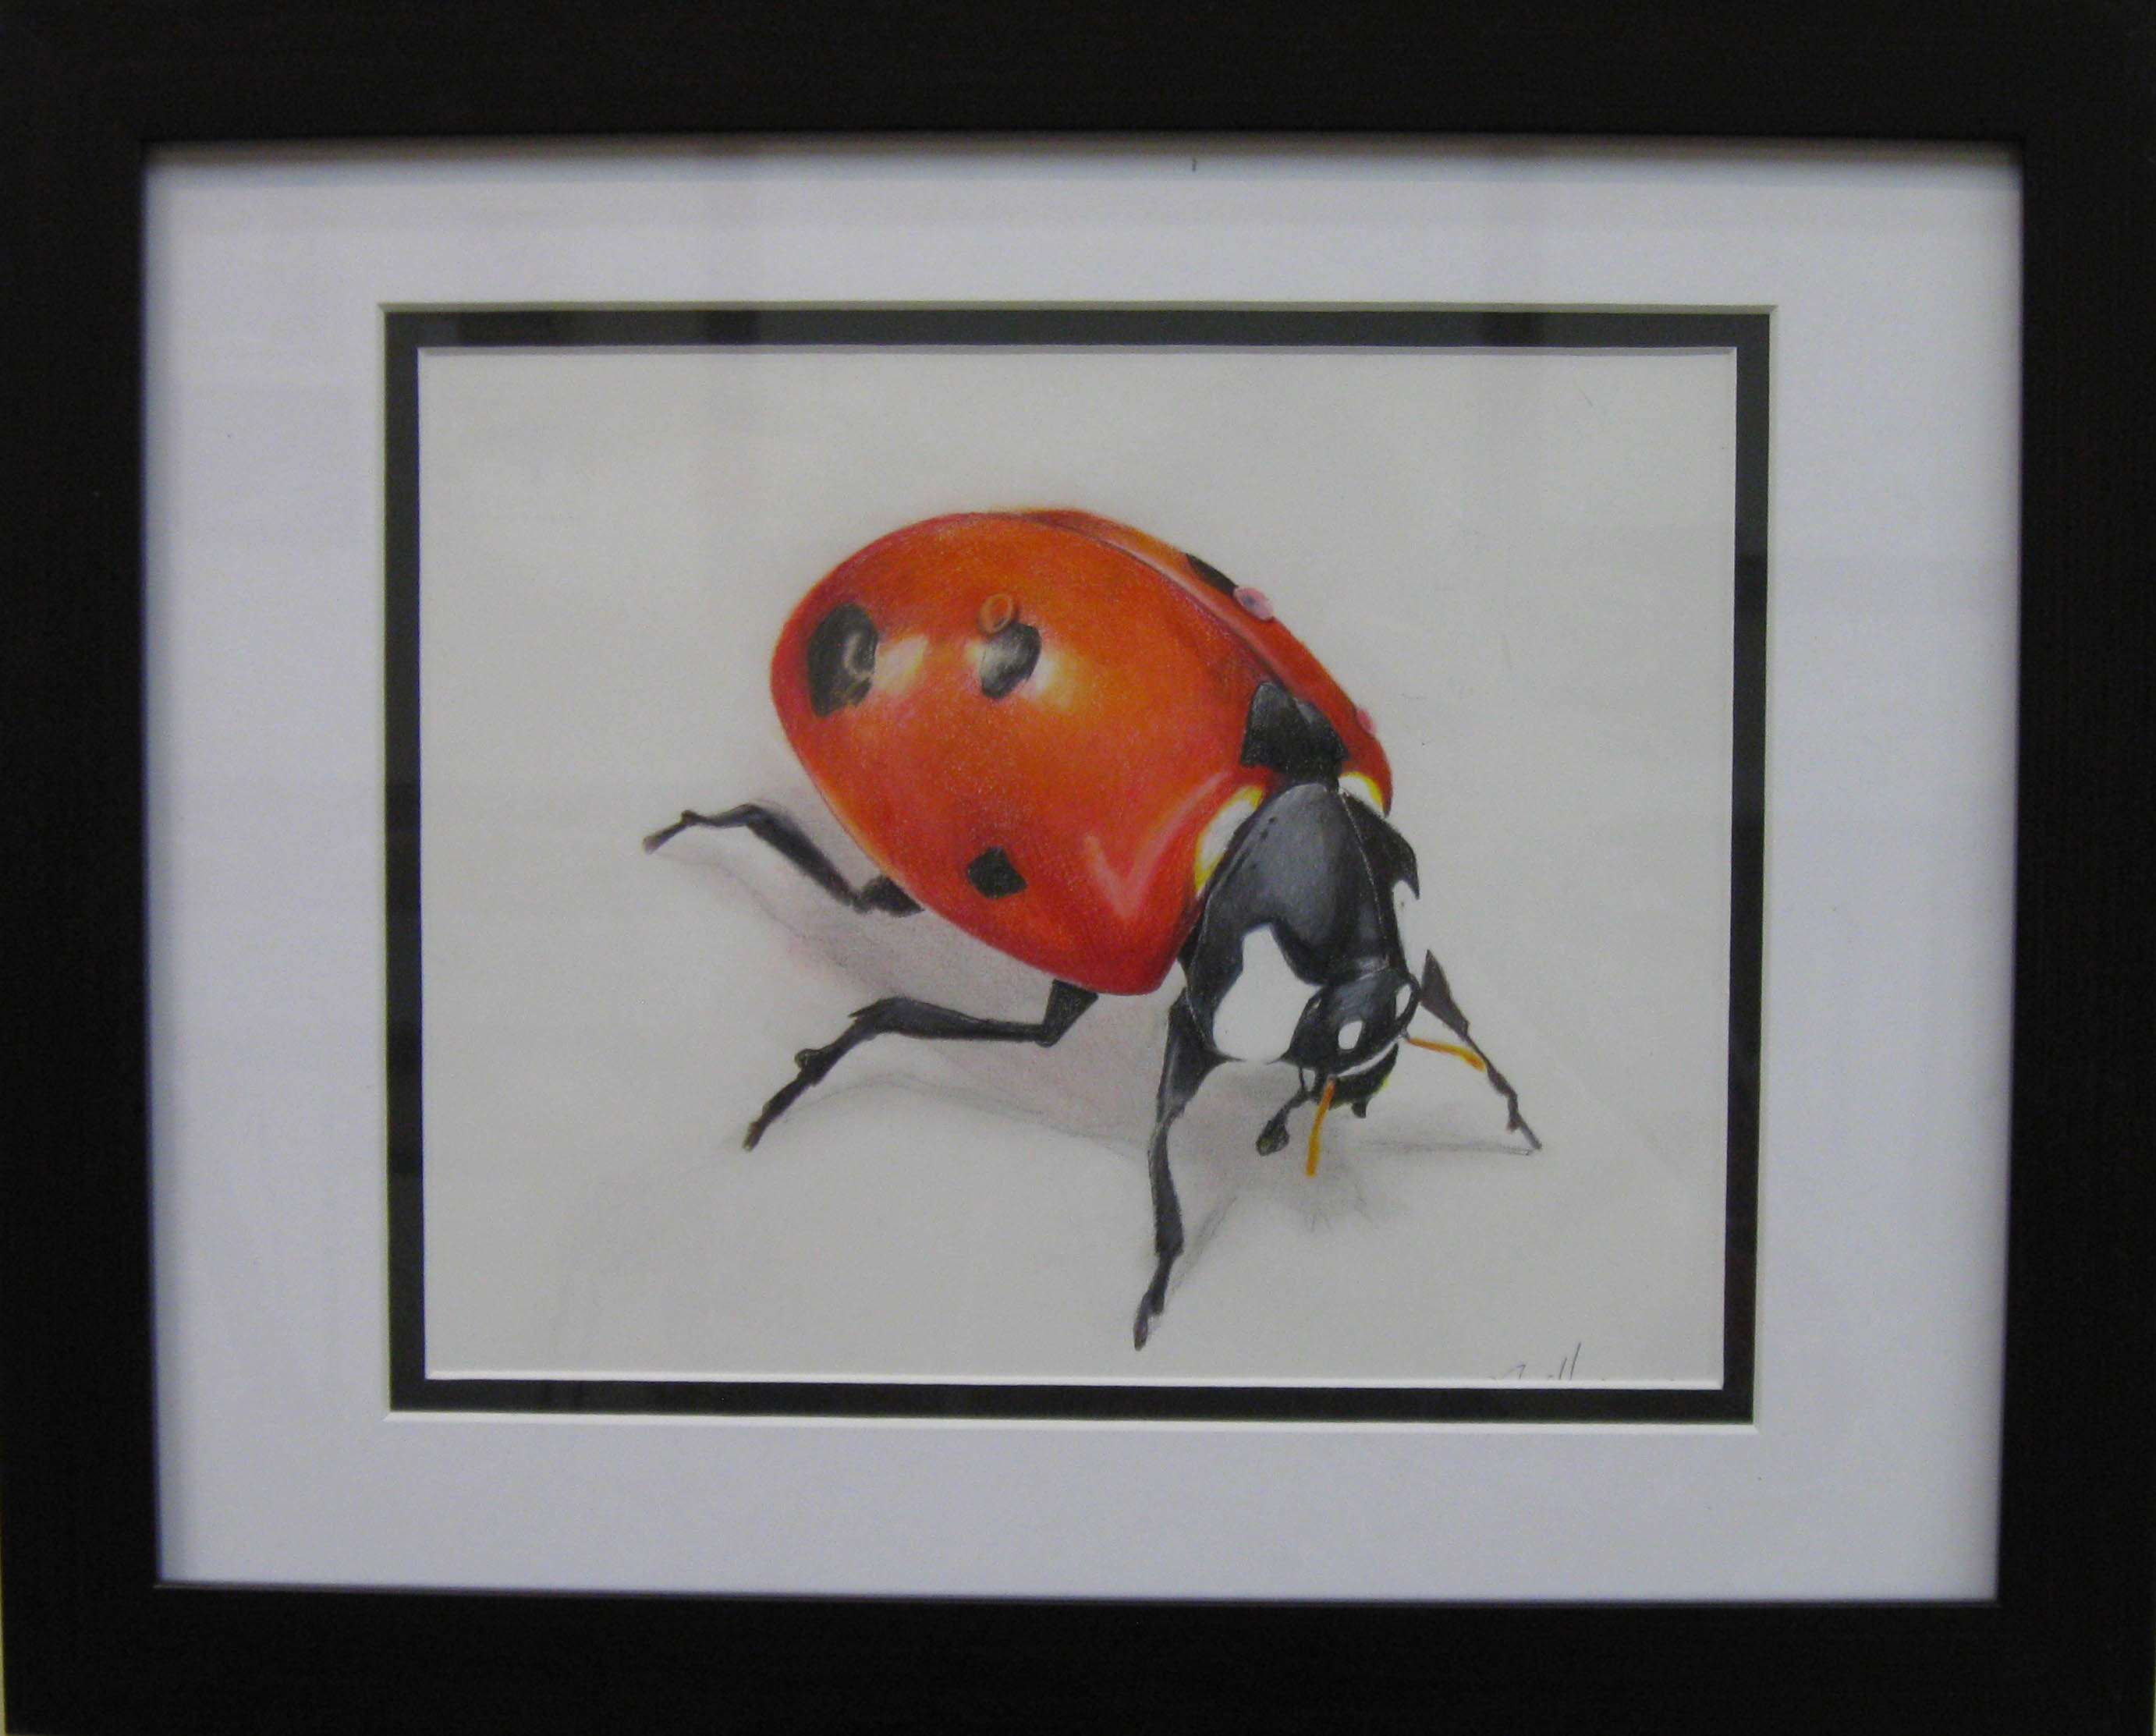 _16 Merit JoshuaMiller _LuckyLadyBug_ ColoredPencil